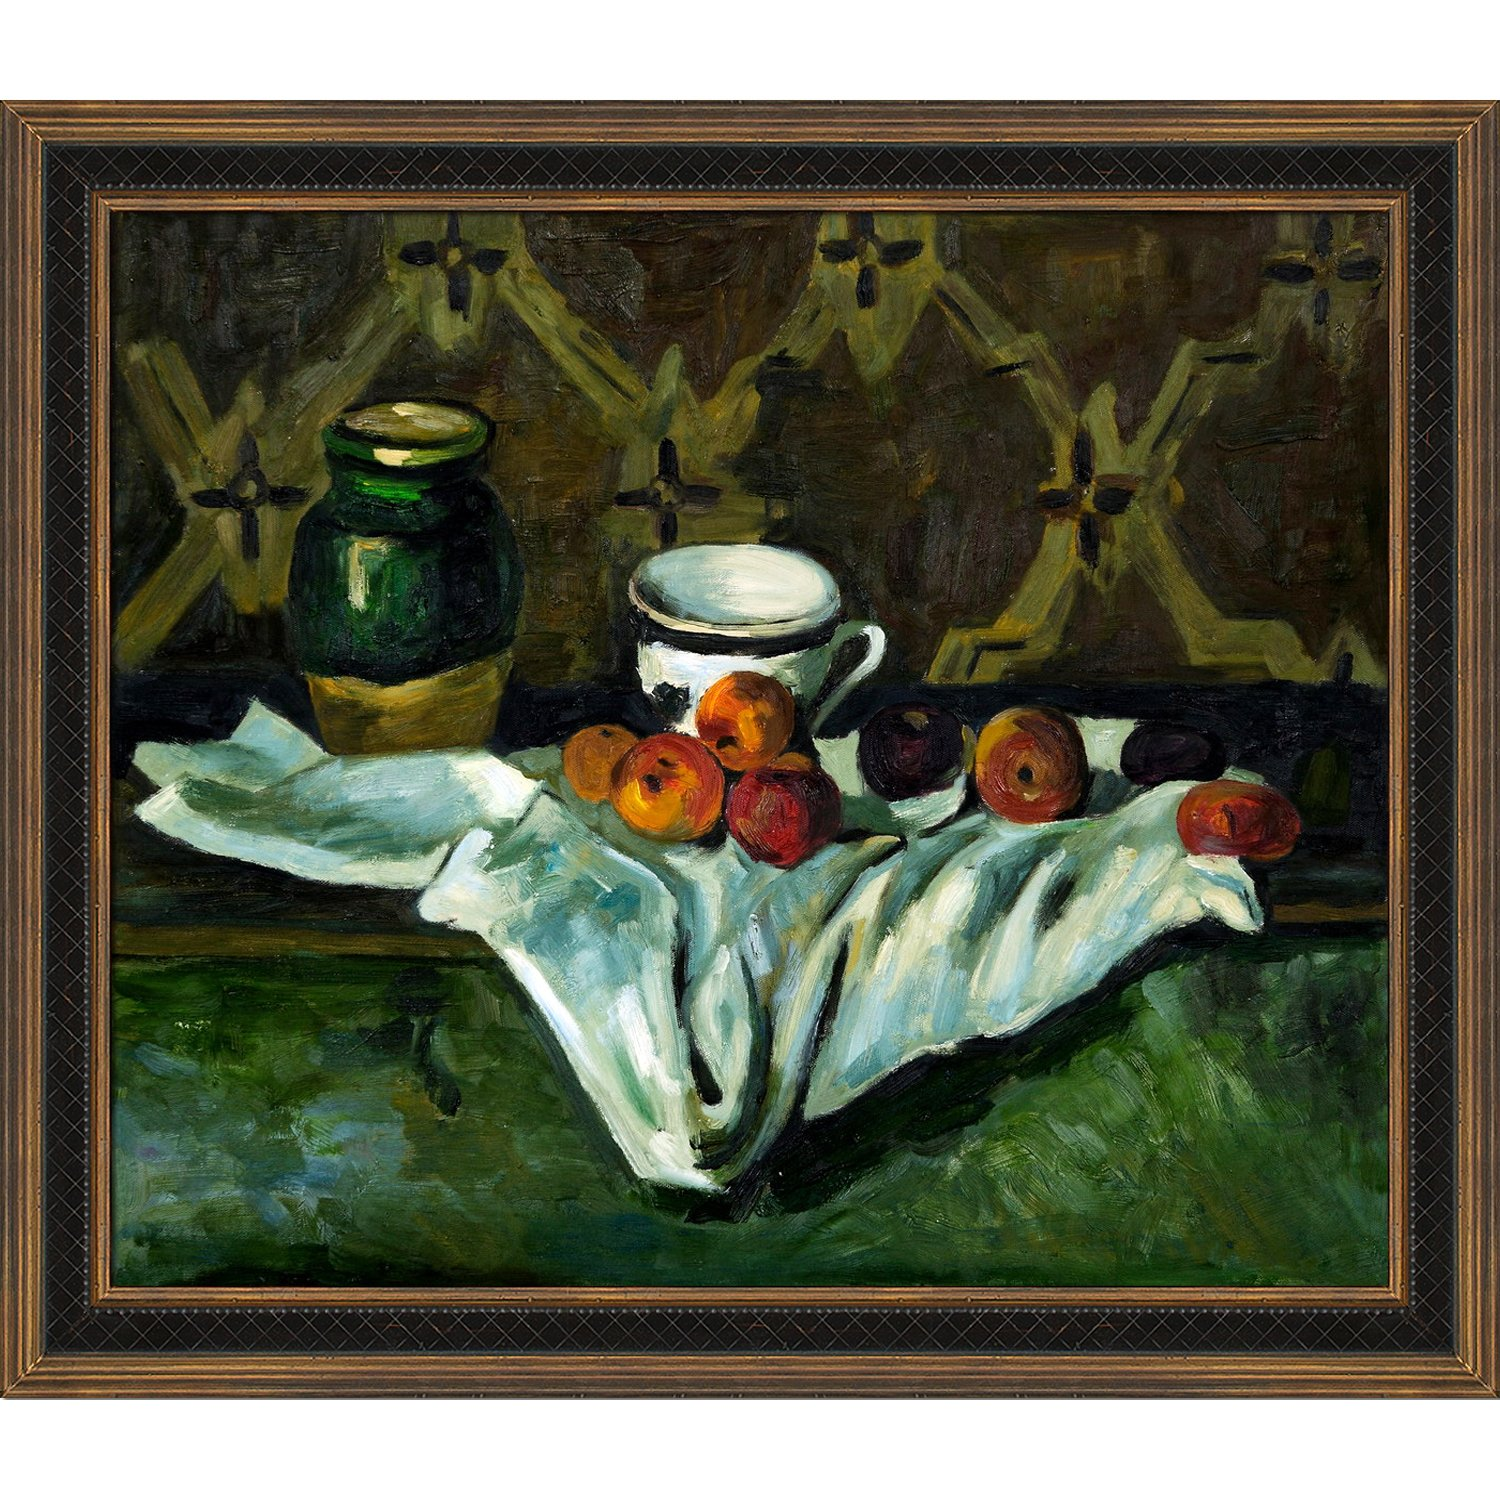 overstockArt Cezanne Still Life with Cottage Oak Frame Diamond Patterned with Bronze and Dark Stain Finish